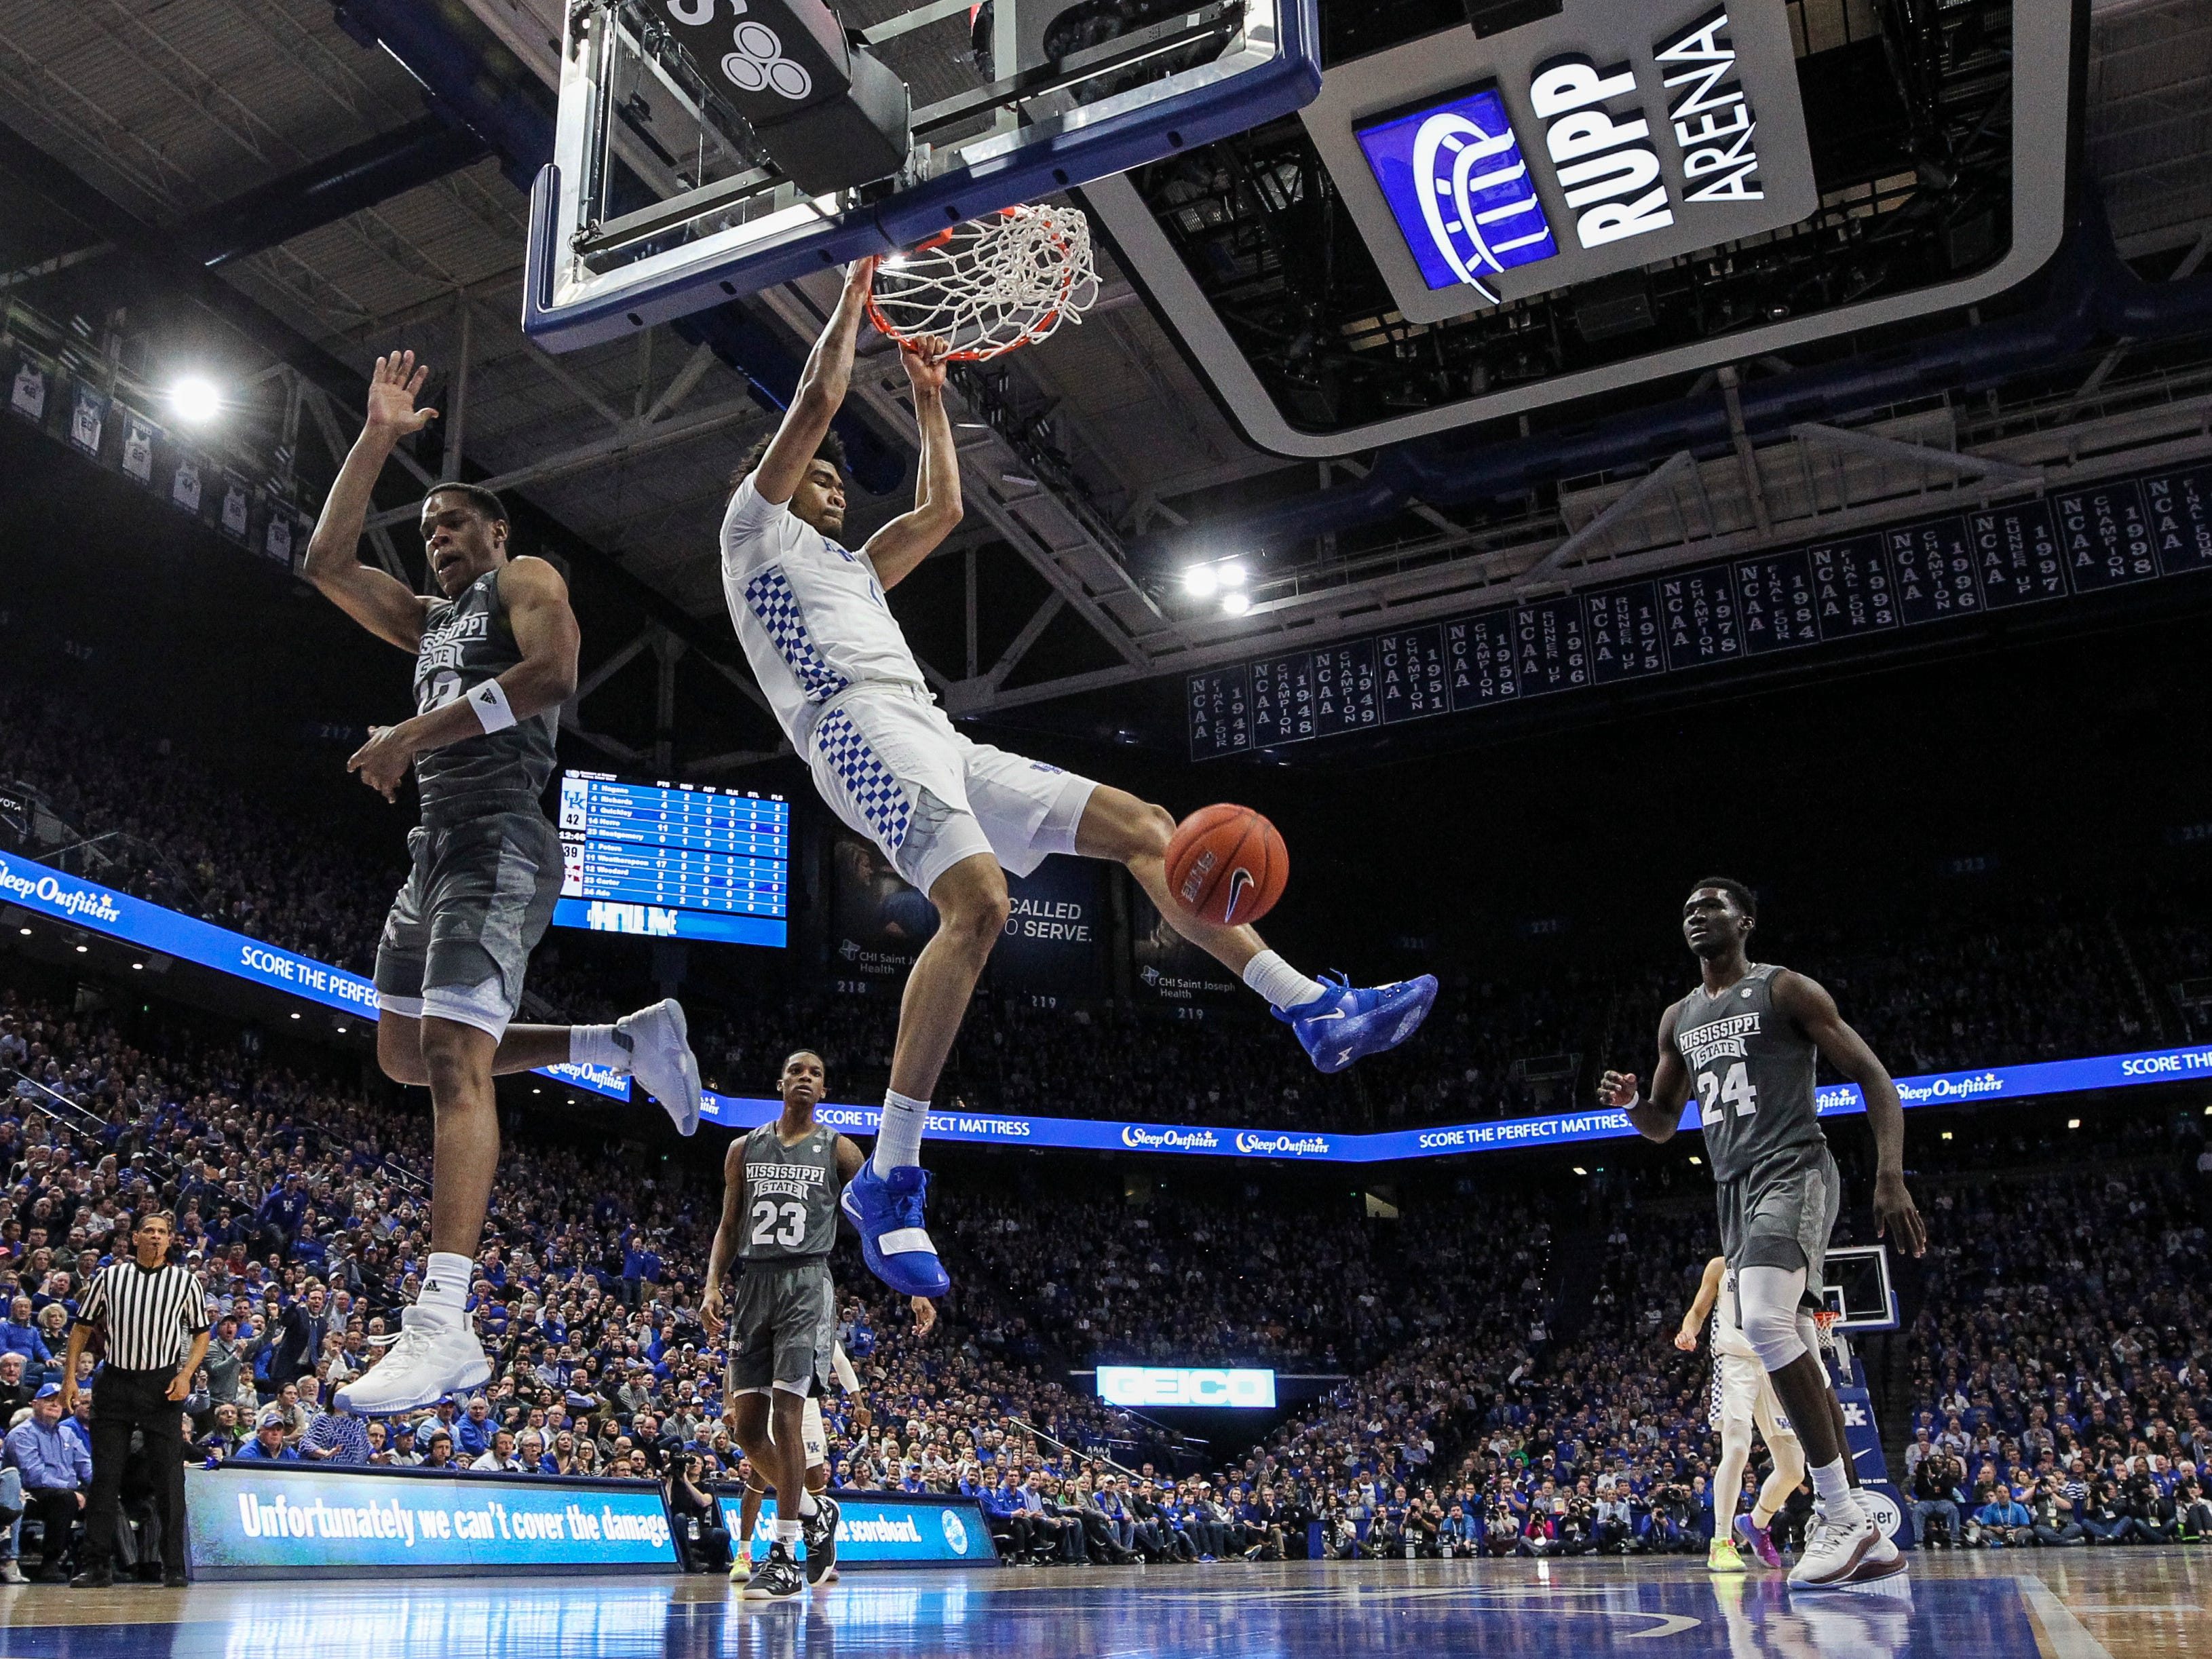 Kentucky's Nick Richards slams down two against Mississippi State Tuesday night at Rupp Arena in Lexington. January 22, 2019